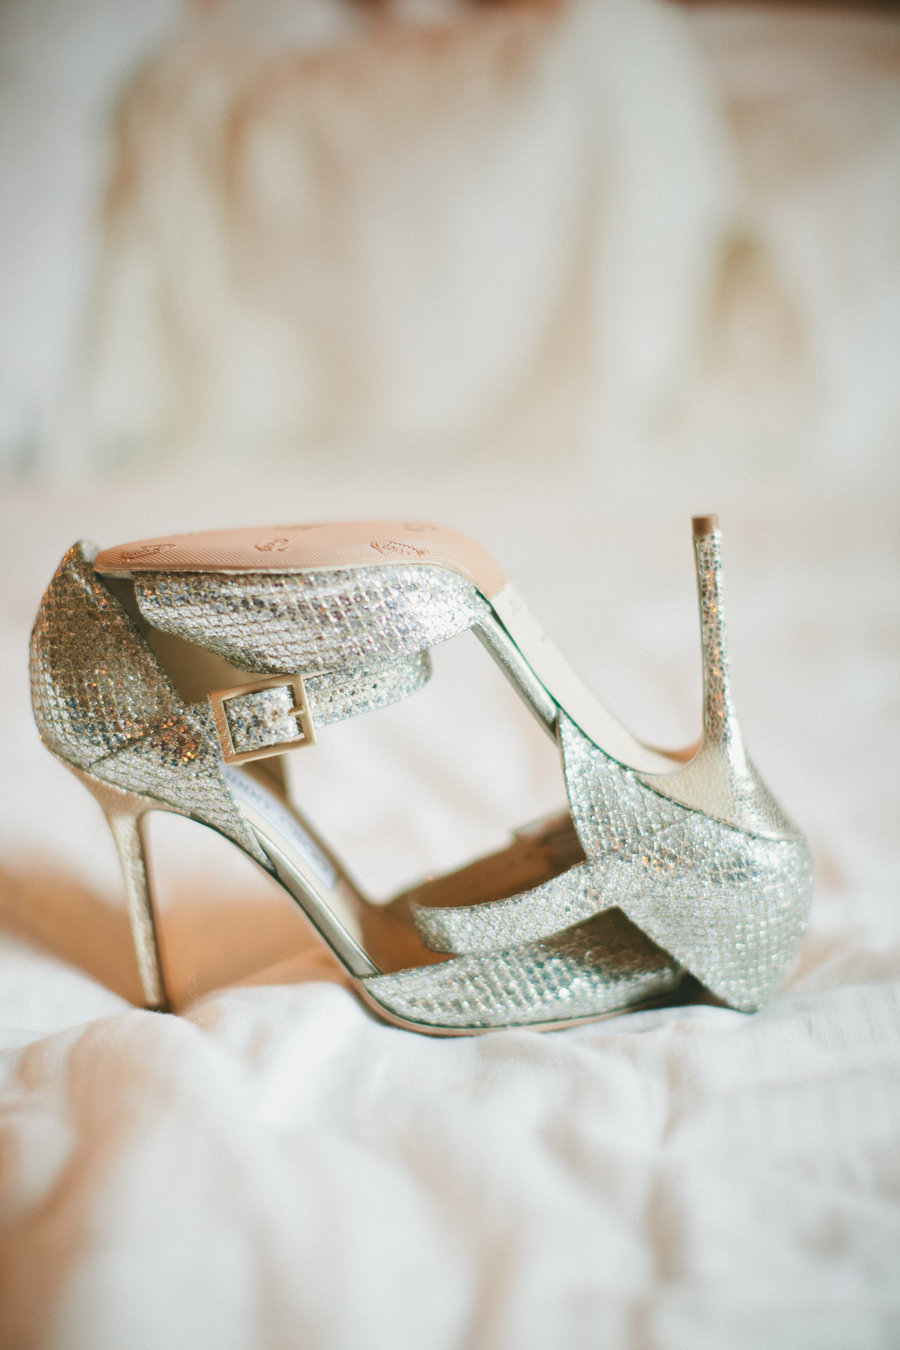 Sparkly-jimmy-choo-wedding-shoes-photography-wish-list-.full